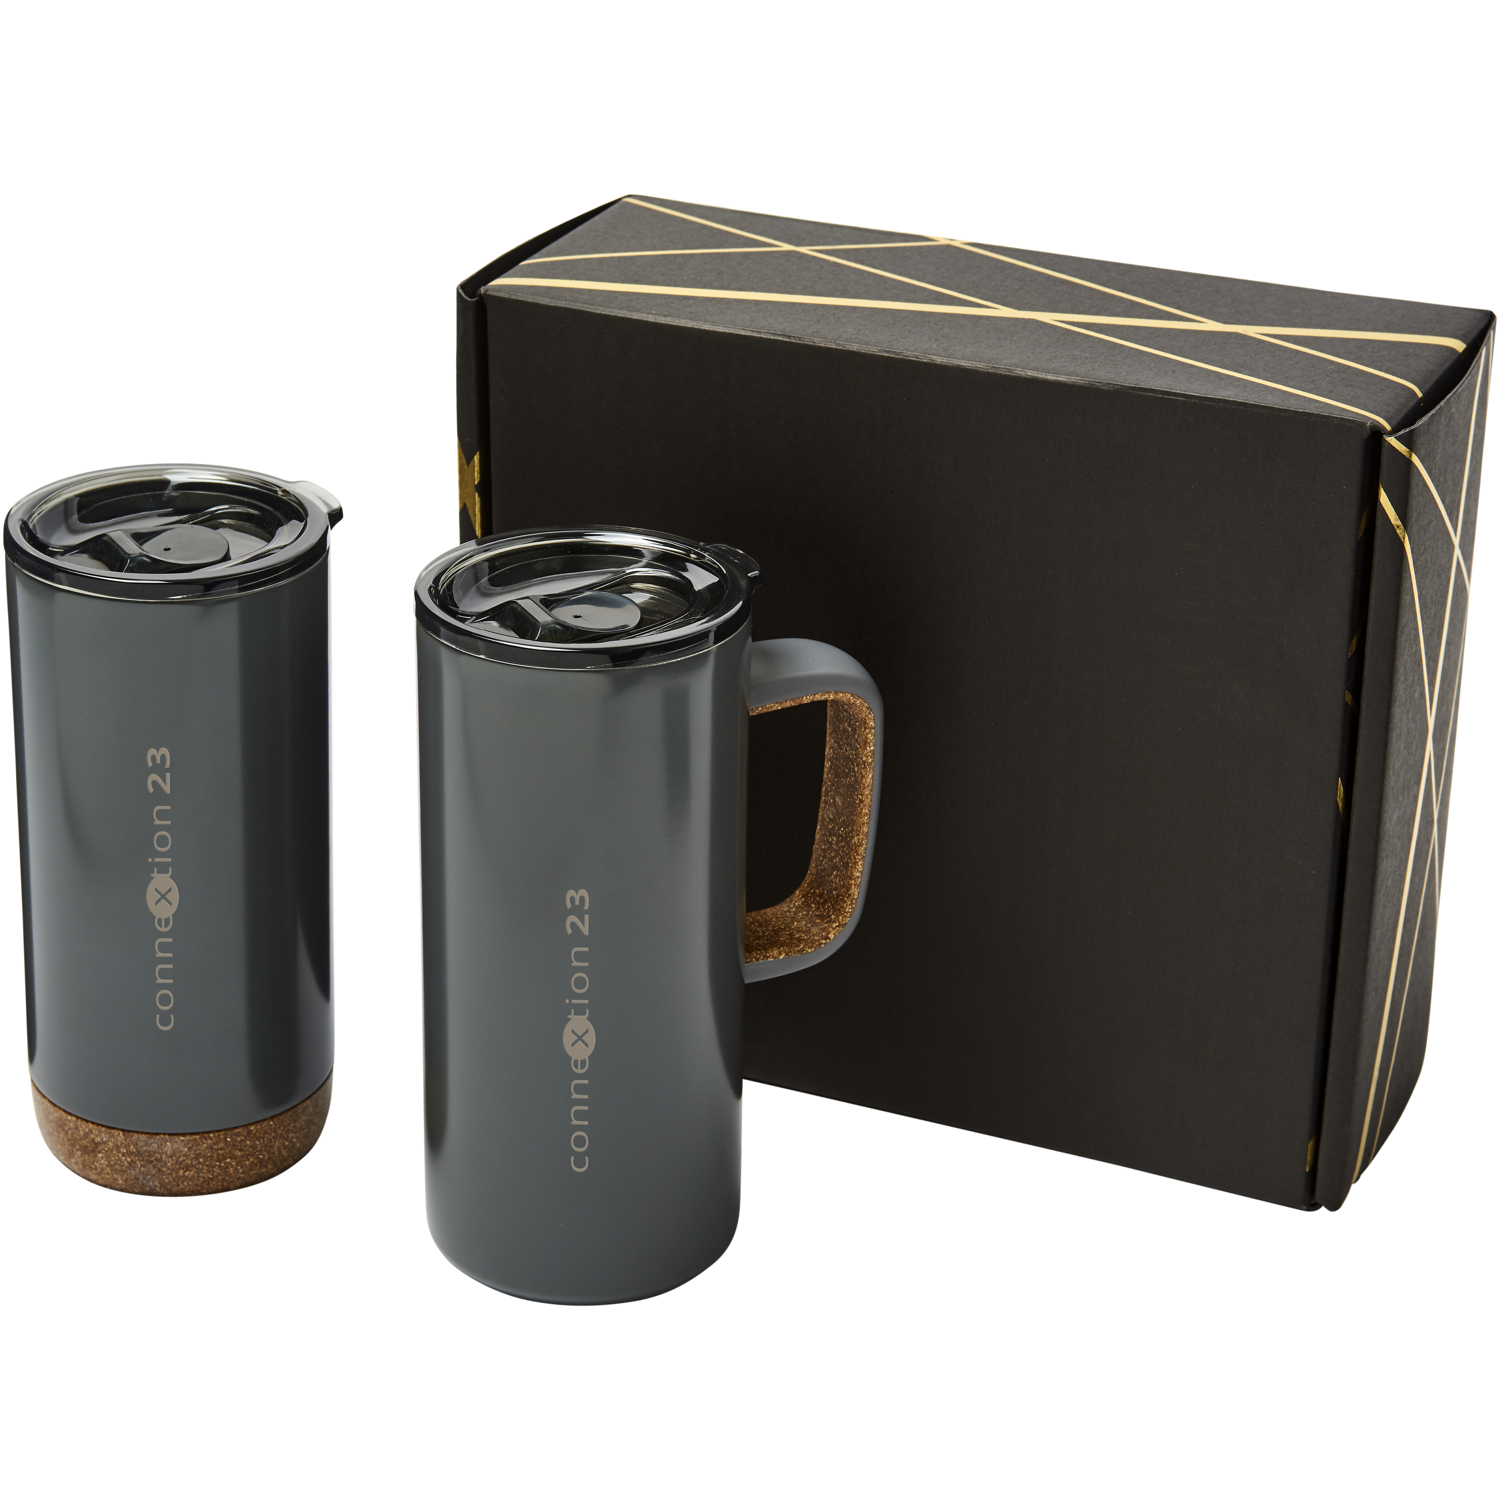 Valhalla Mug And Tumbler Copper Gift Set